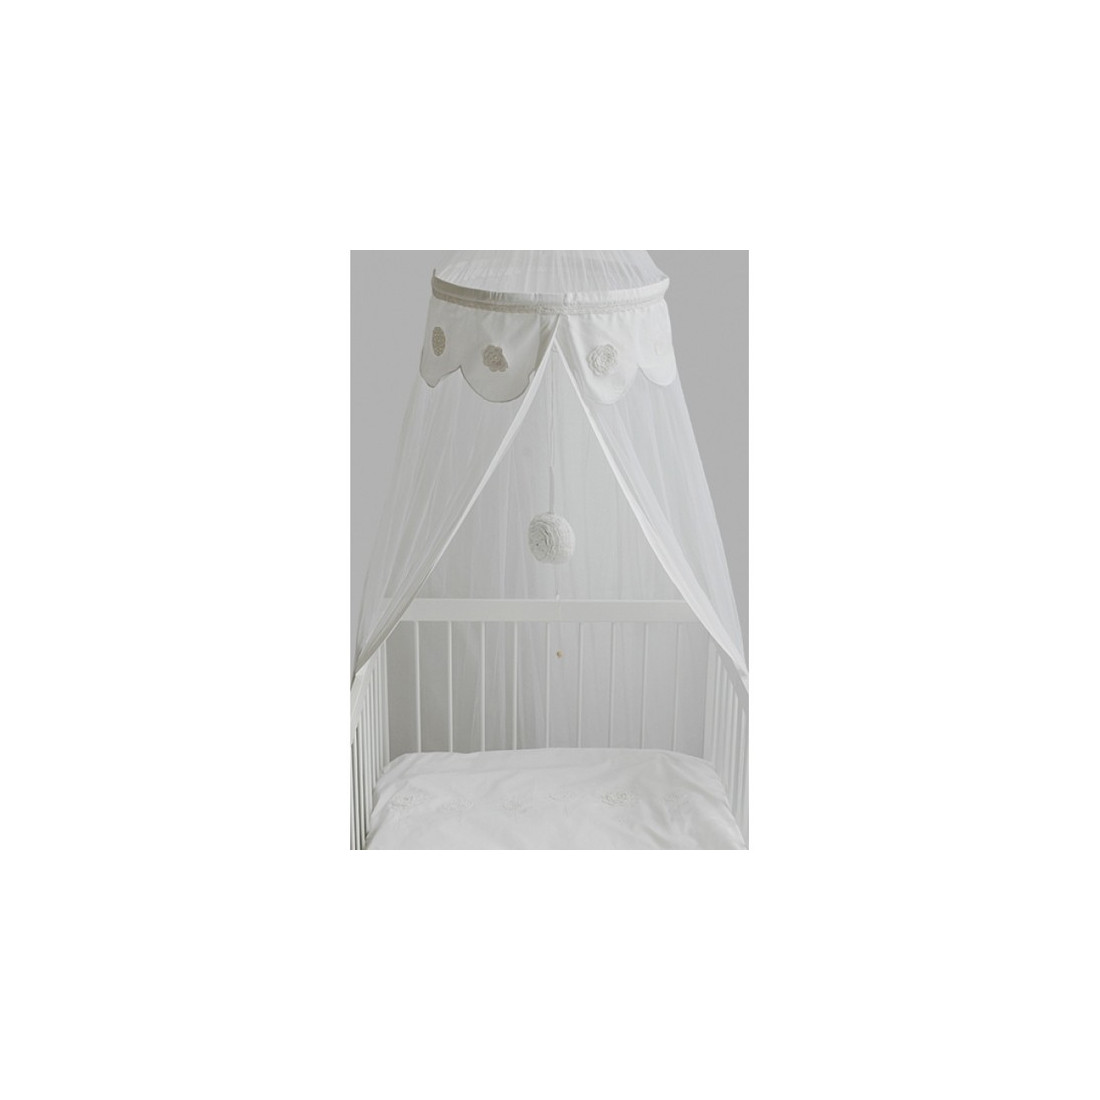 ciel de lit moustiquaire crochet blanc fleurs blanches ma chambramoi. Black Bedroom Furniture Sets. Home Design Ideas